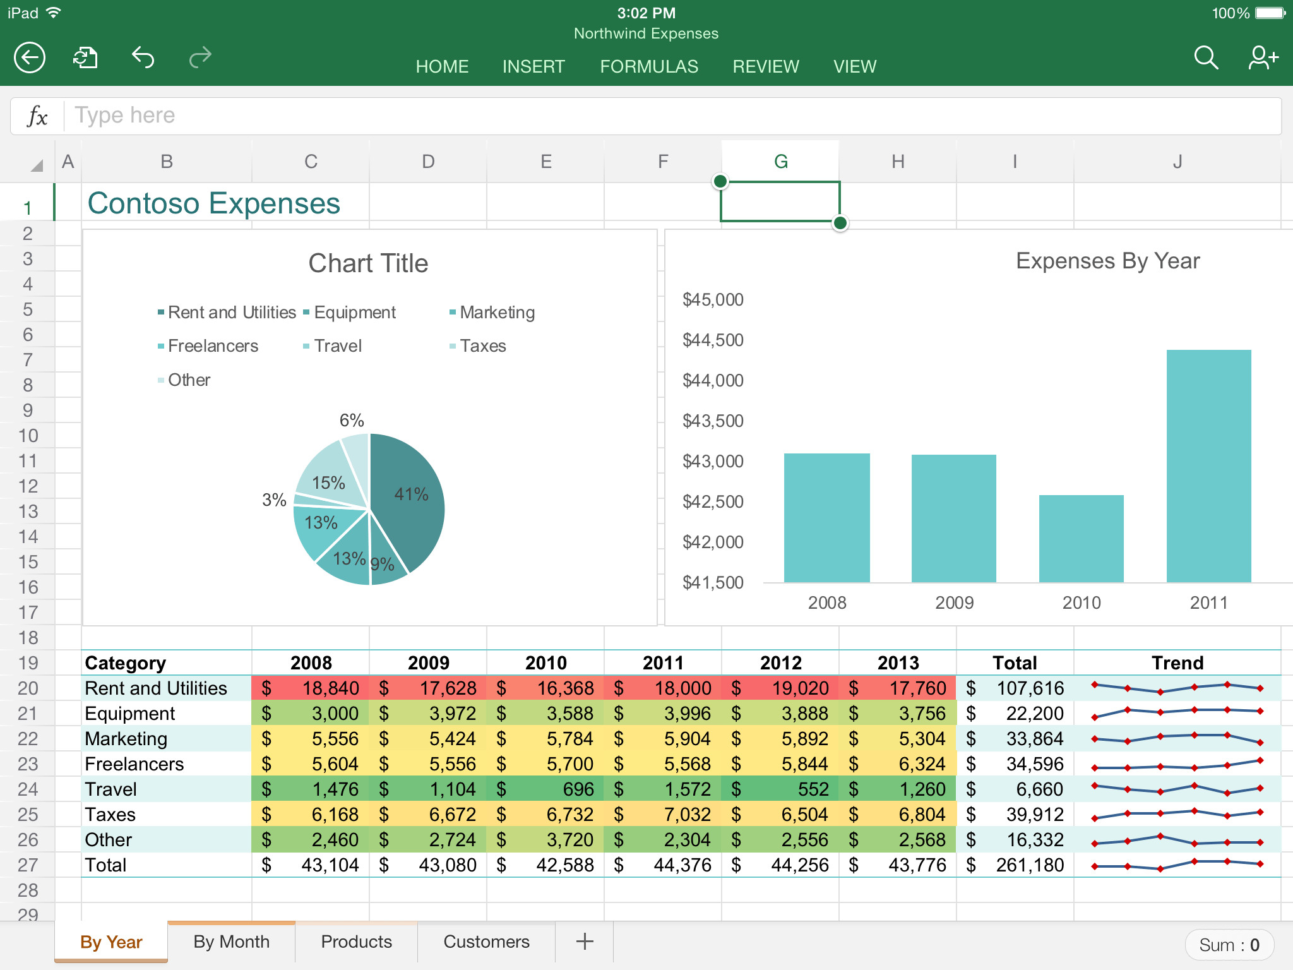 Novated Lease Calculator Excel Spreadsheet Throughout Equipment Lease Calculator Excel Spreadsheet Unique Equipment Lease